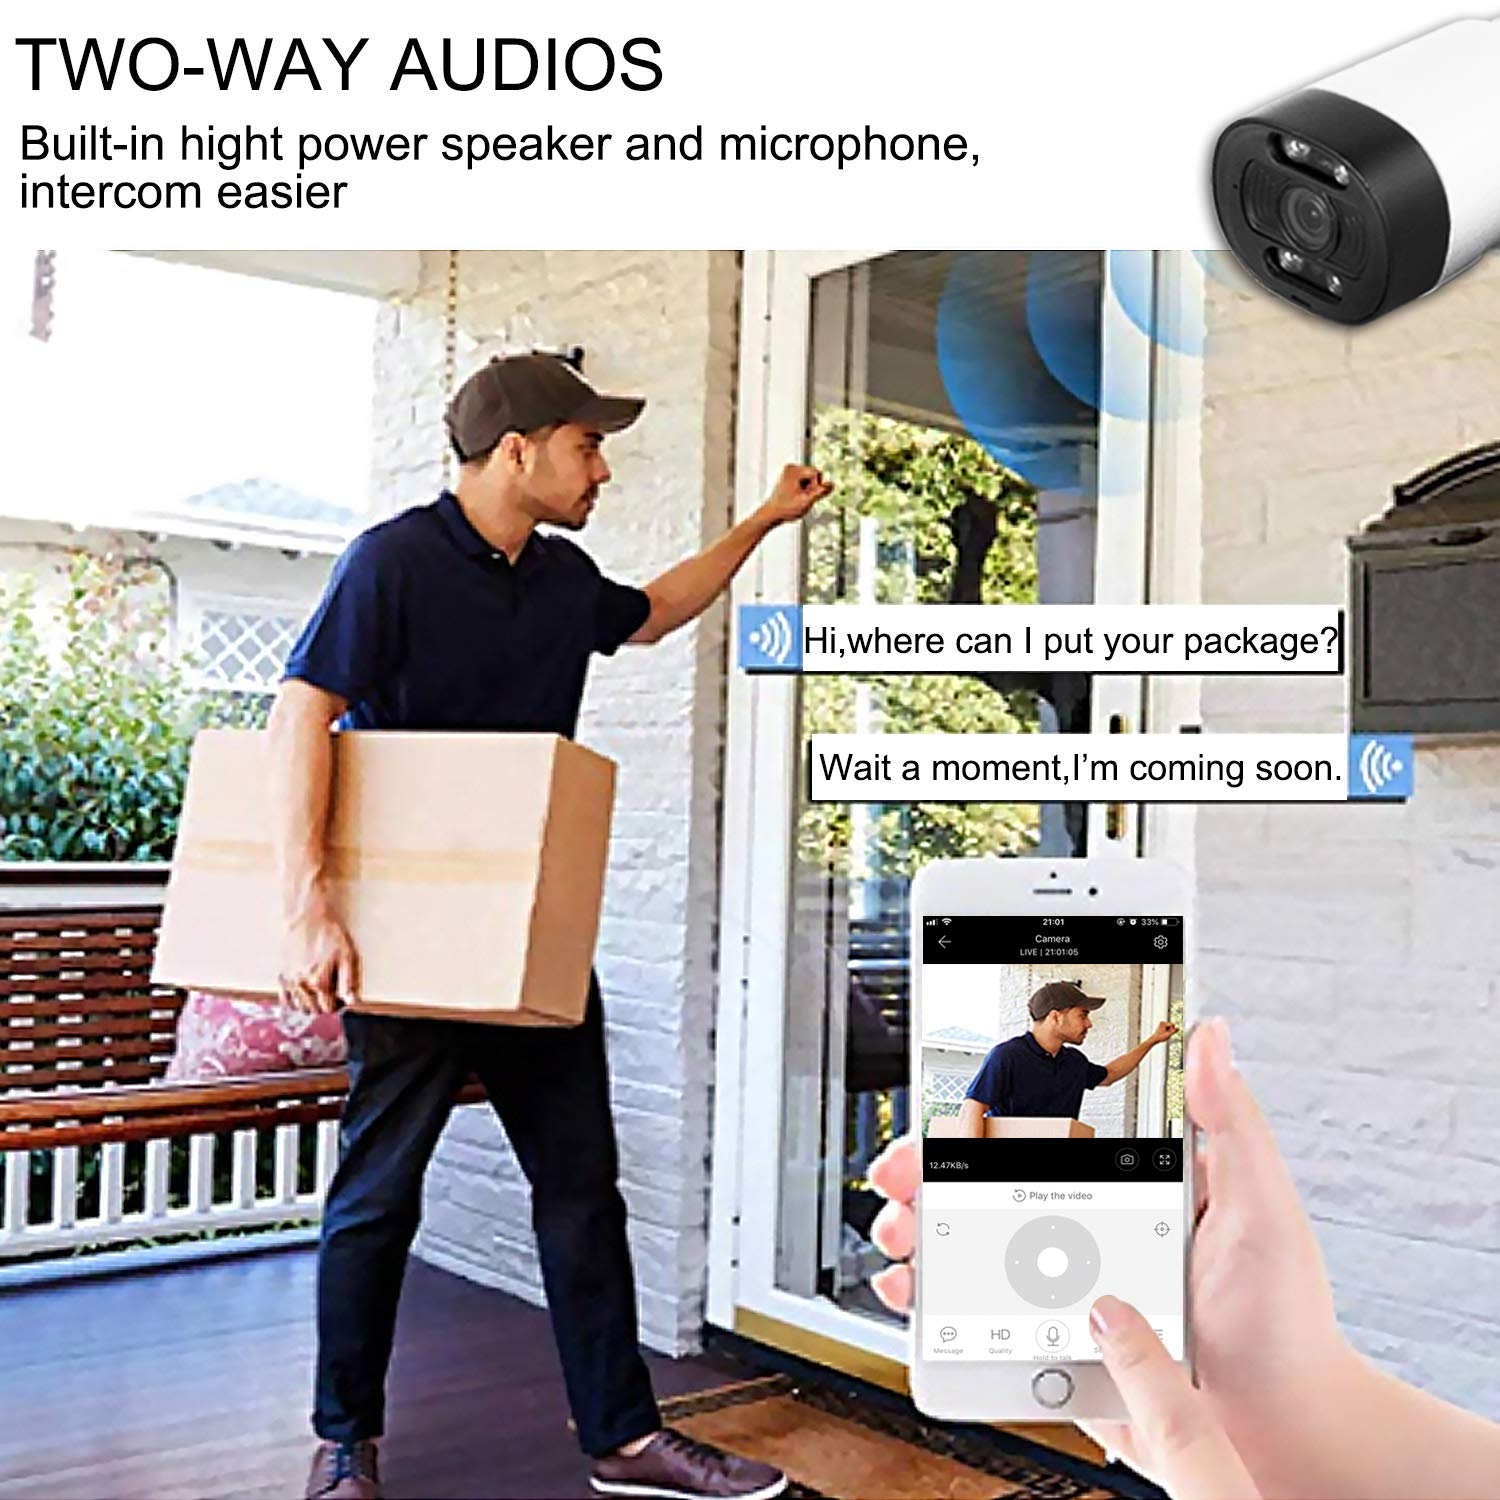 iWINTOP Outdoor Security Camera Wireless 1080P WiFi Surveillance Camera with Night Vision Siren Alarm Two-Way Audio Motion Detection Cloud Service Waterproof